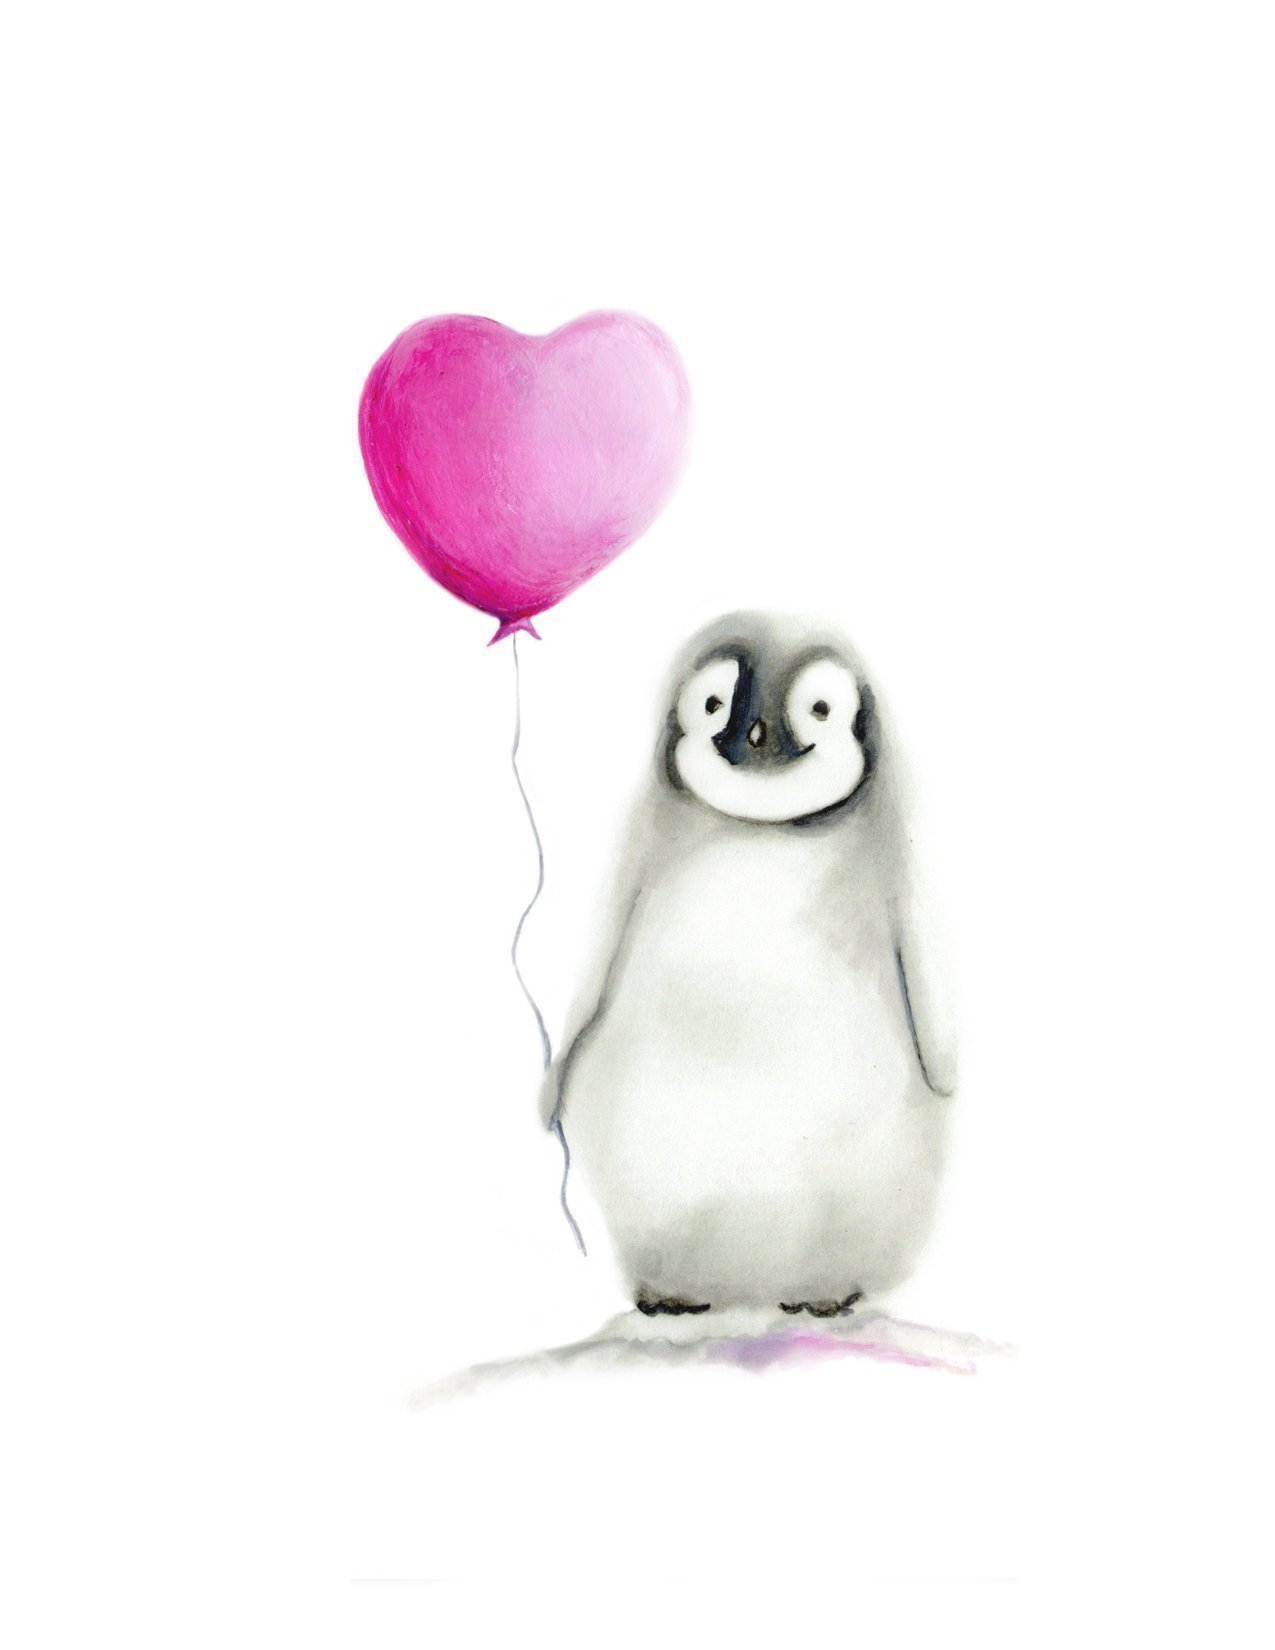 Penguin with Heart Balloon, Nursery Print for Baby, Various Sizes Available, UNFRAMED PRINT by Studio Q Gallery